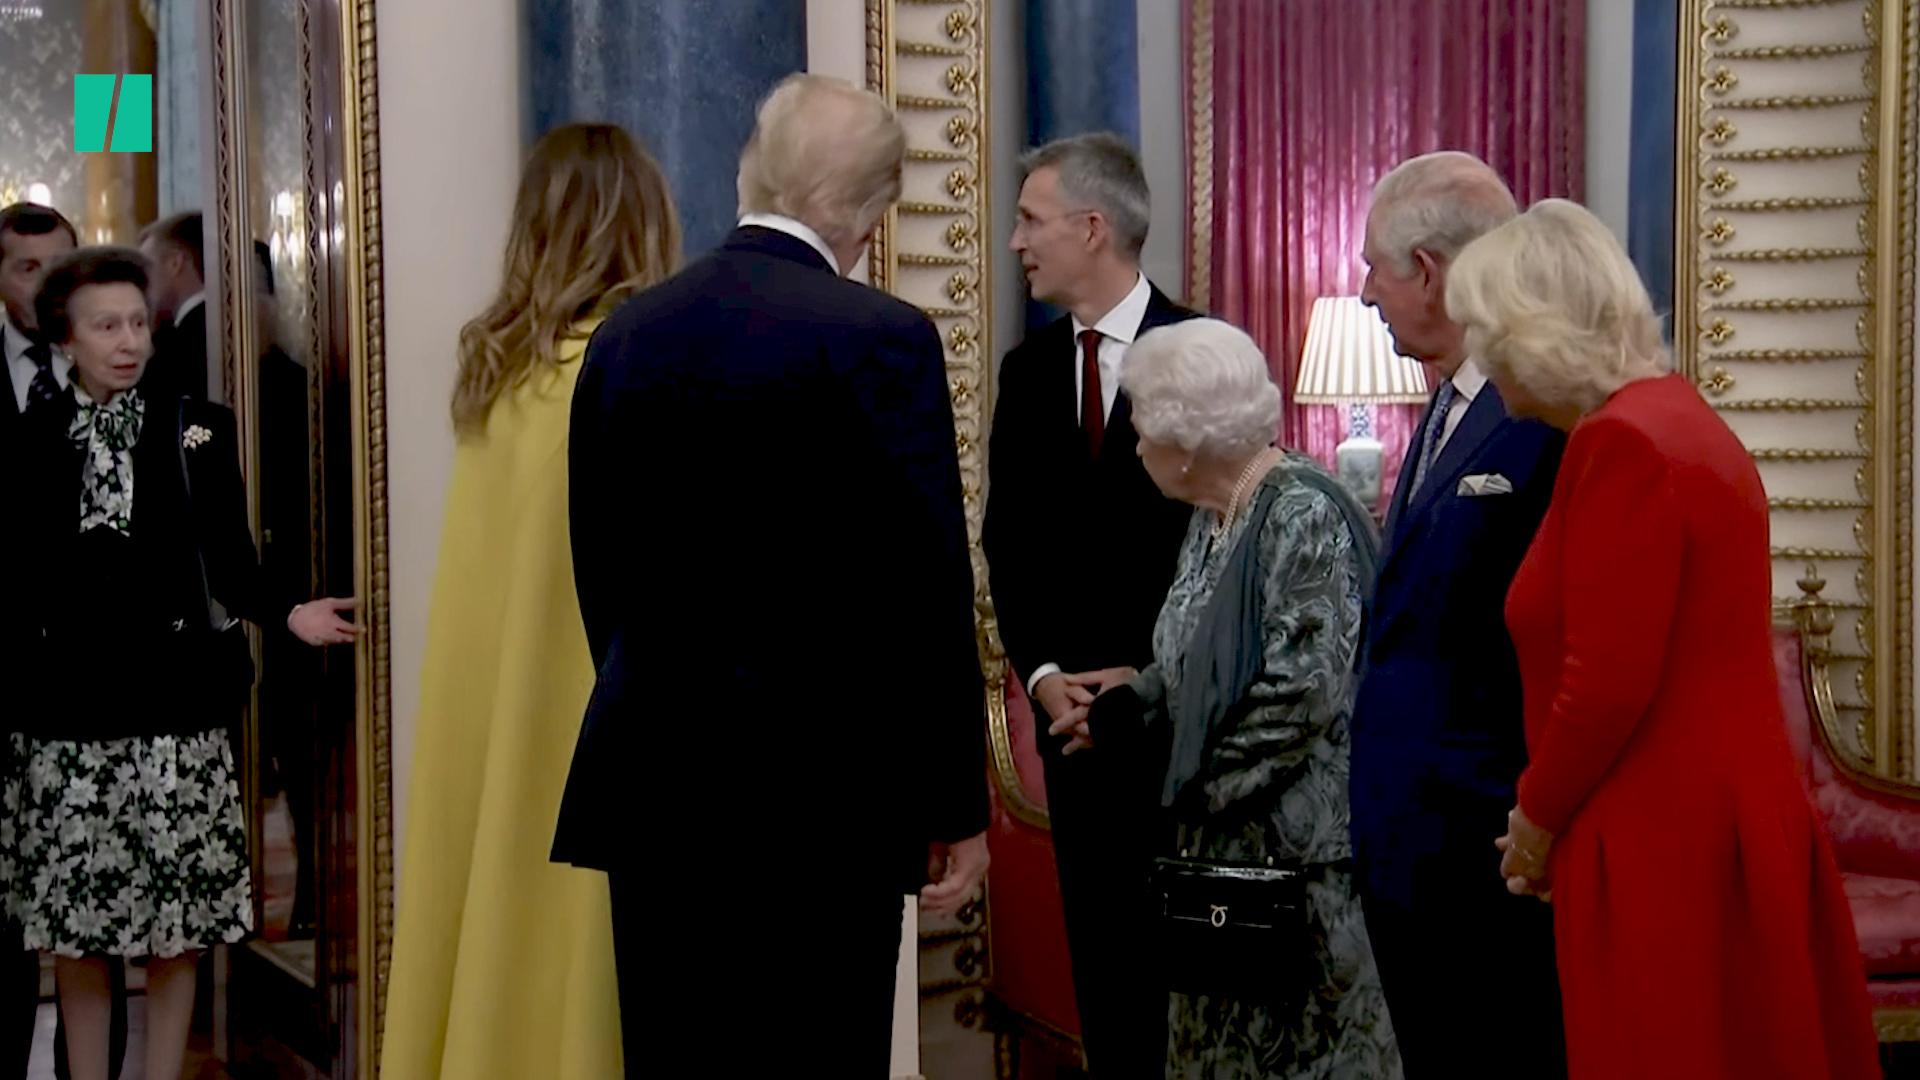 Princess Anne Appears To Be Chastised By The Queen For Not Shaking Donald Trump's Hand